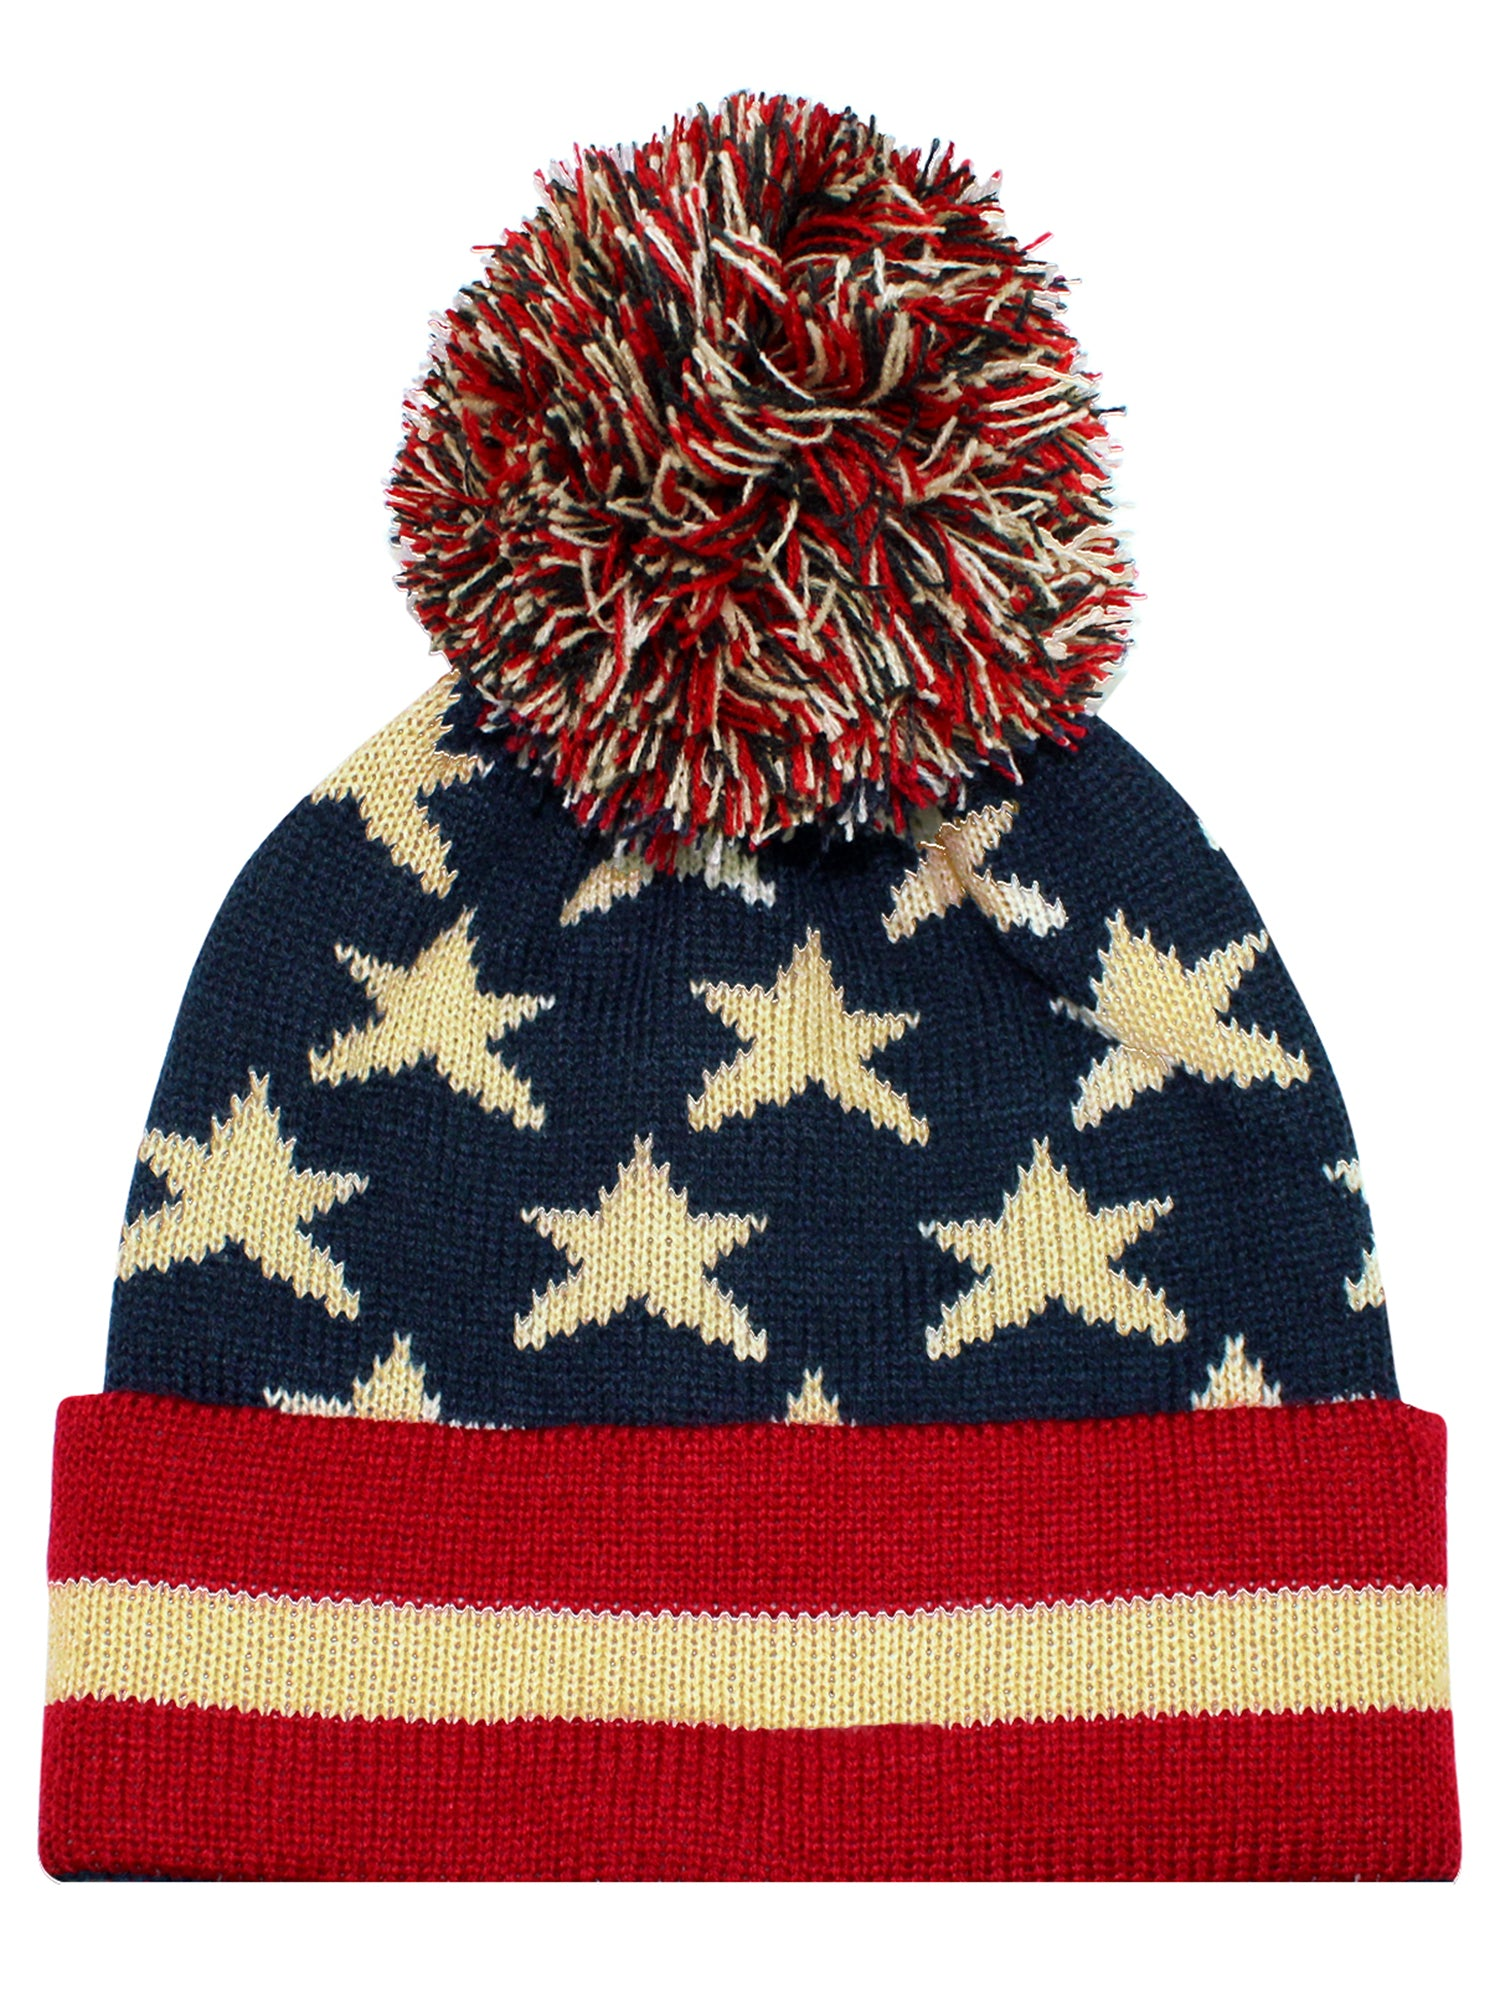 Vintage Red White   Blue American Flag Knit Pom Pom Beanie Hat ... 464acaa3d95